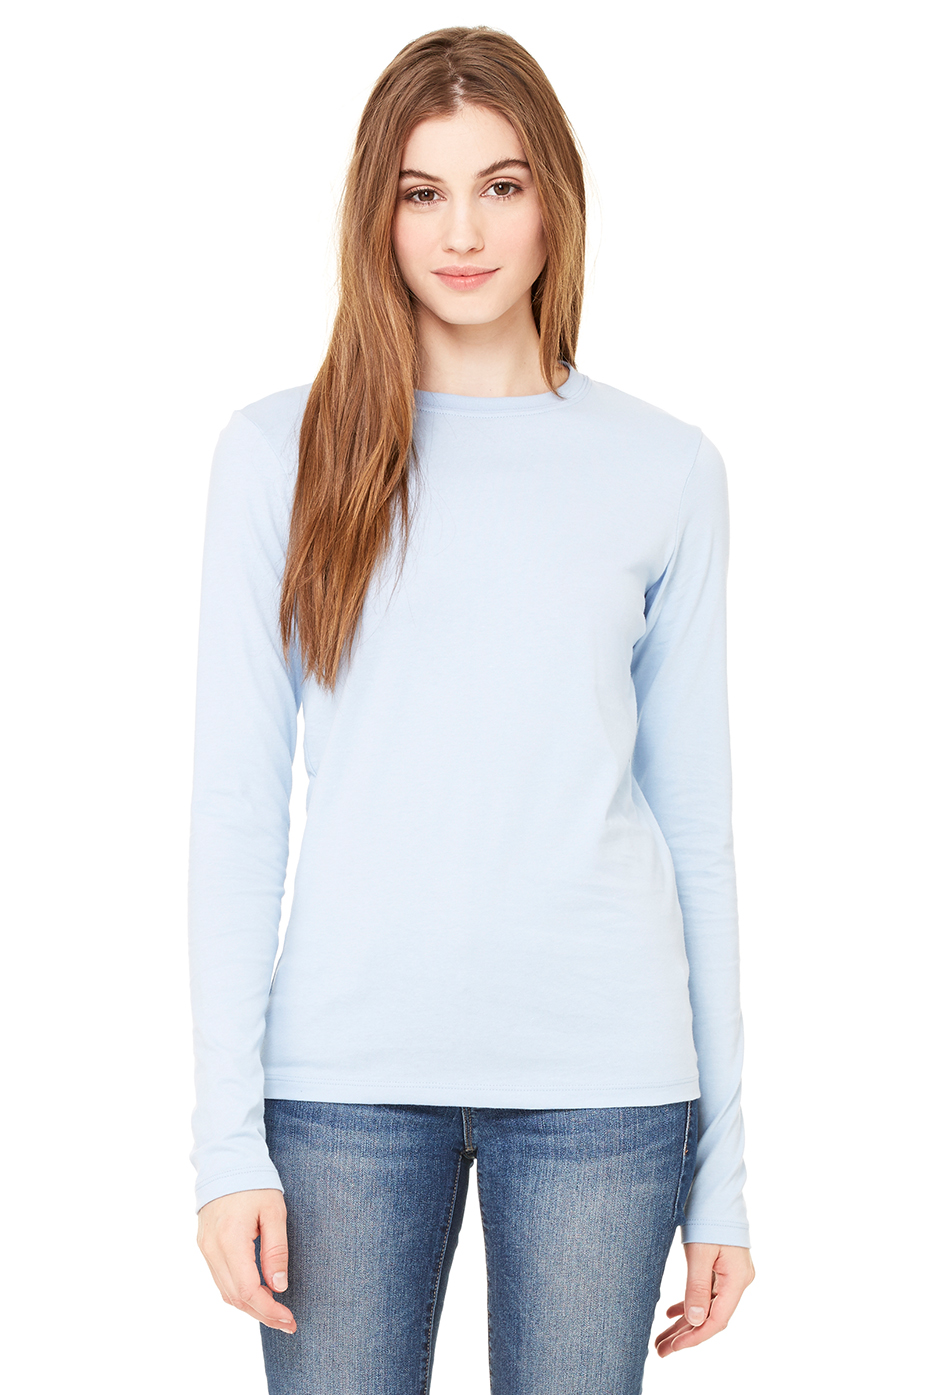 Women's Jersey Long Sleeve Tee | Bella-Canvas